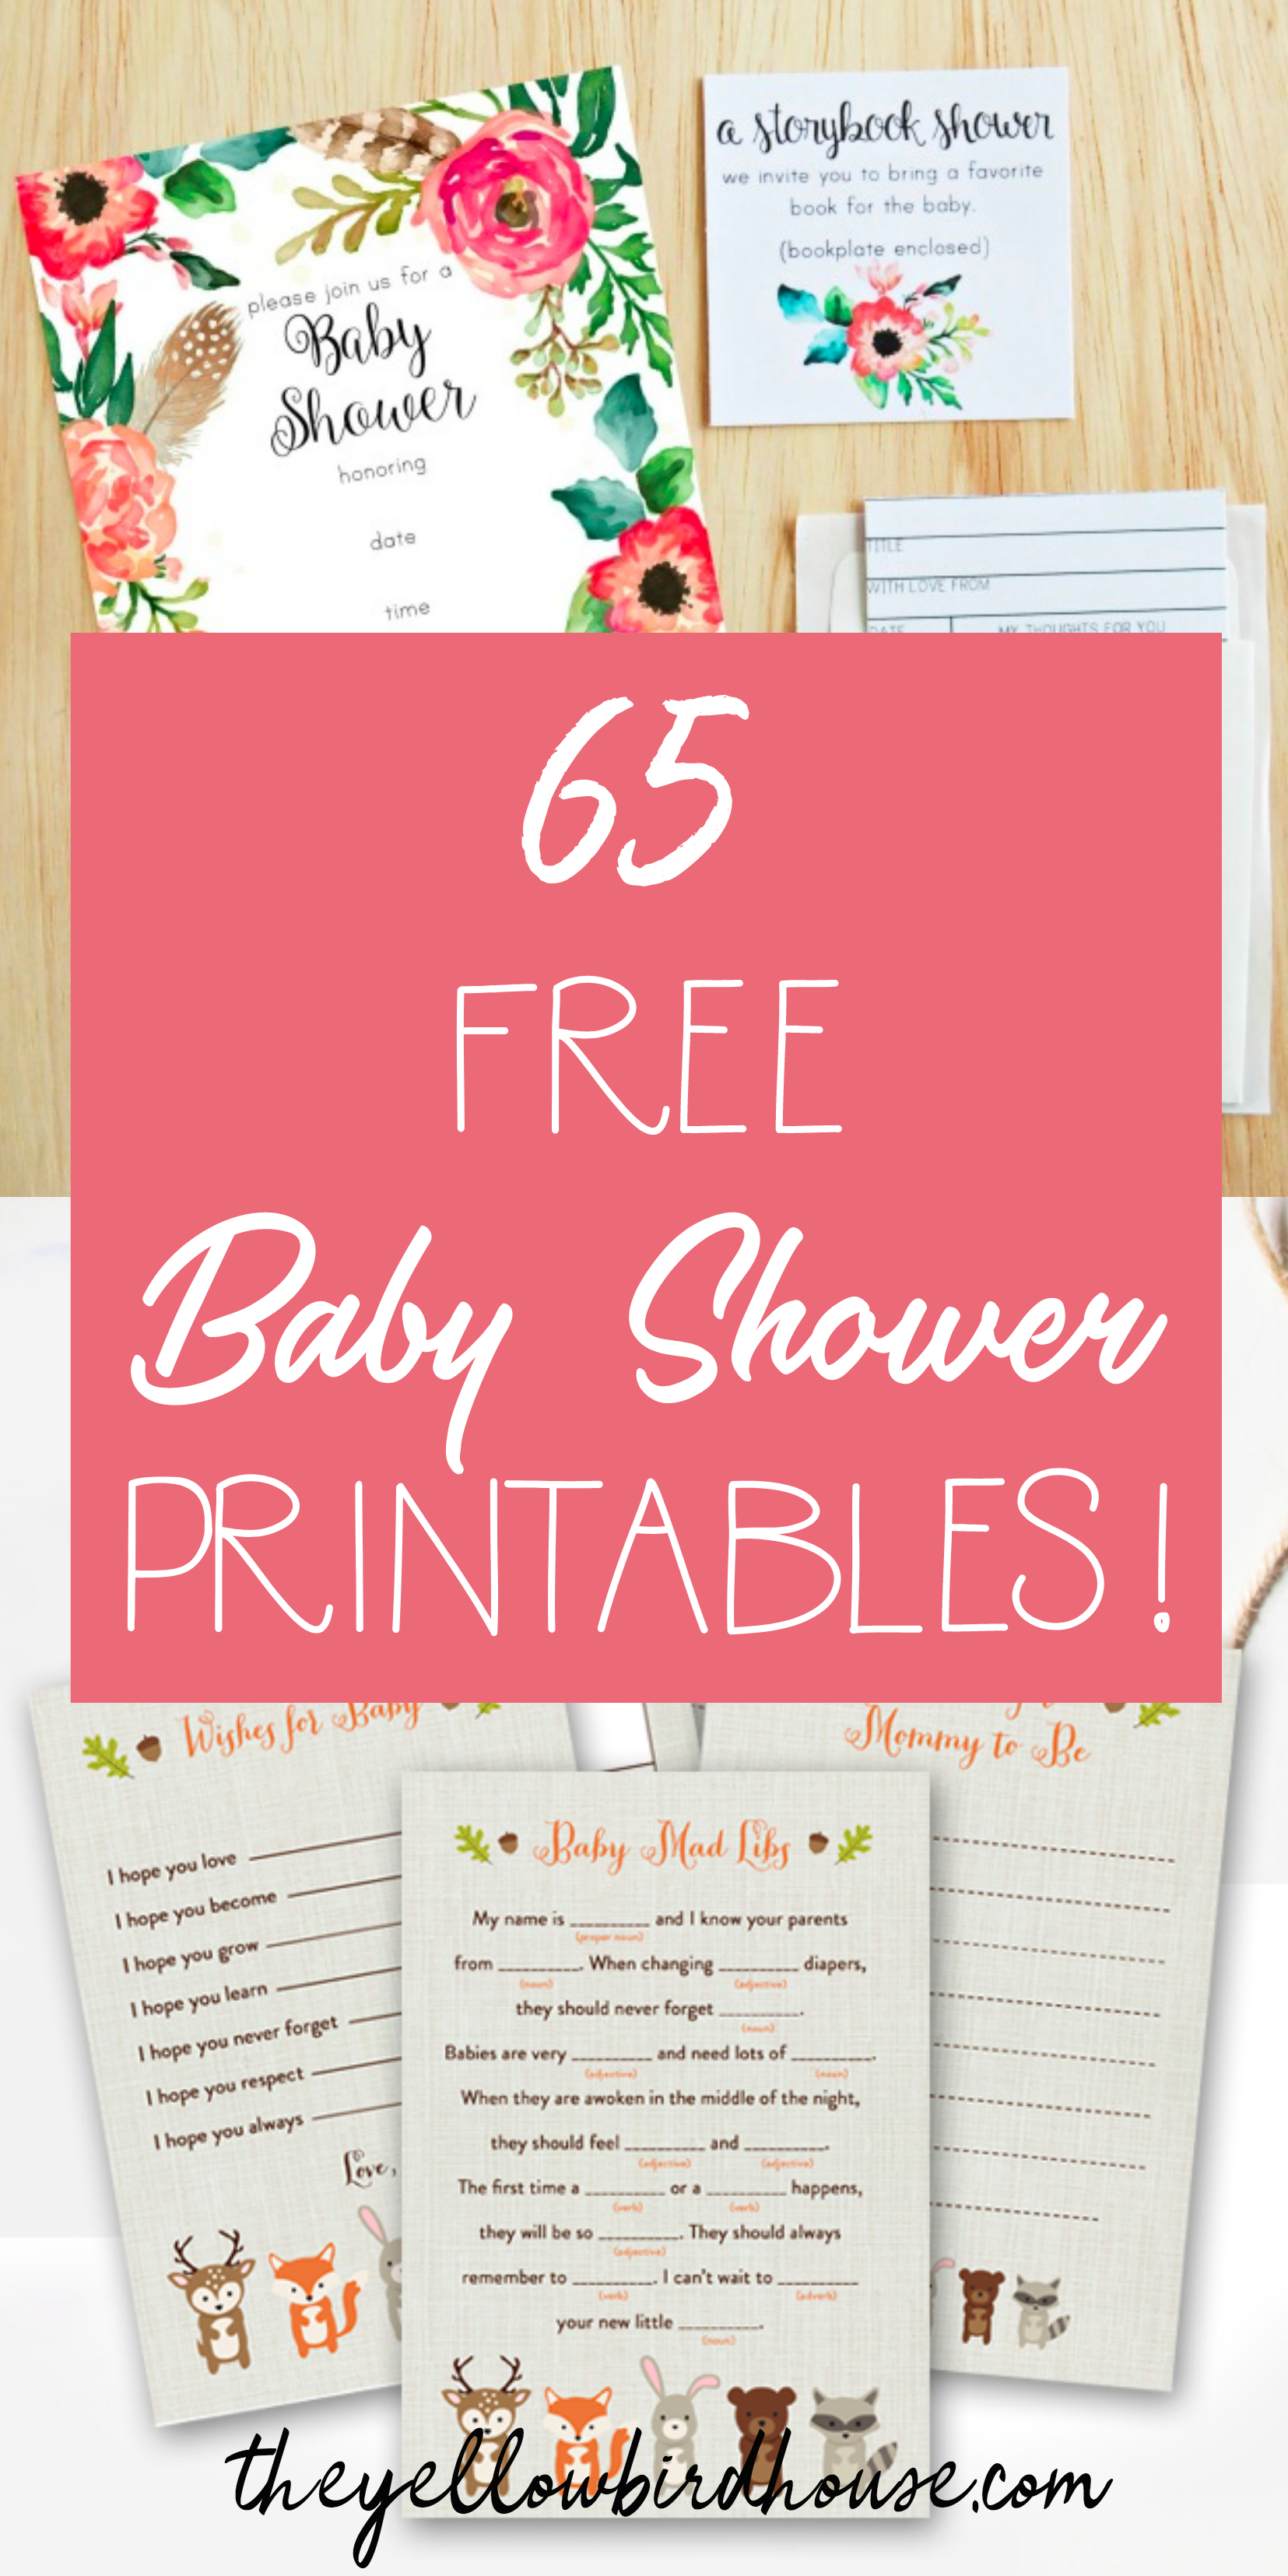 65 Free Baby Shower Printables For An Adorable Party - Free Printable Baby Shower Photo Booth Props